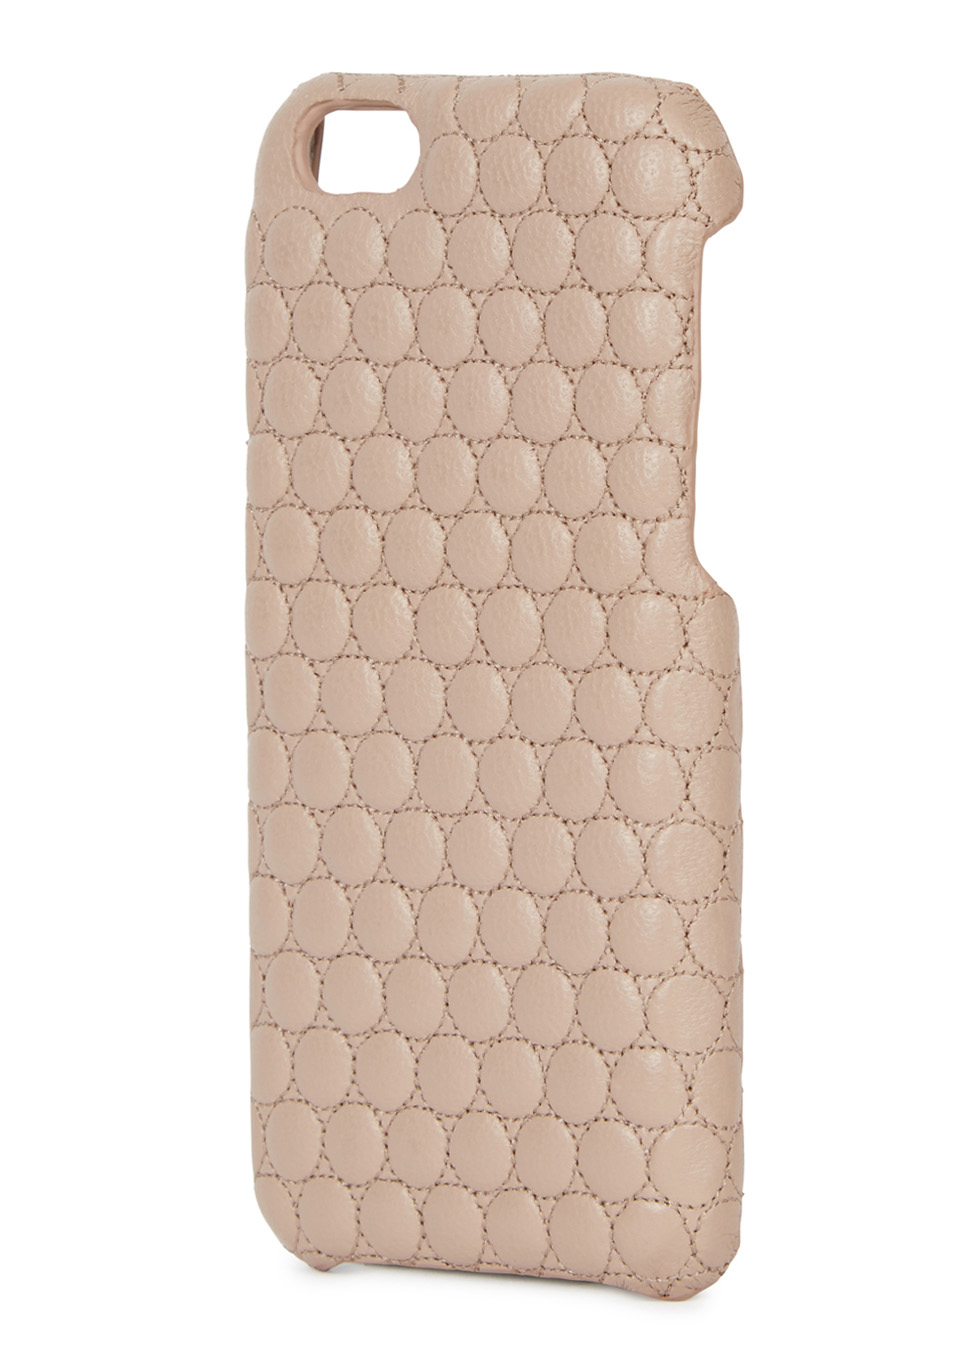 taupe iphone 6 case